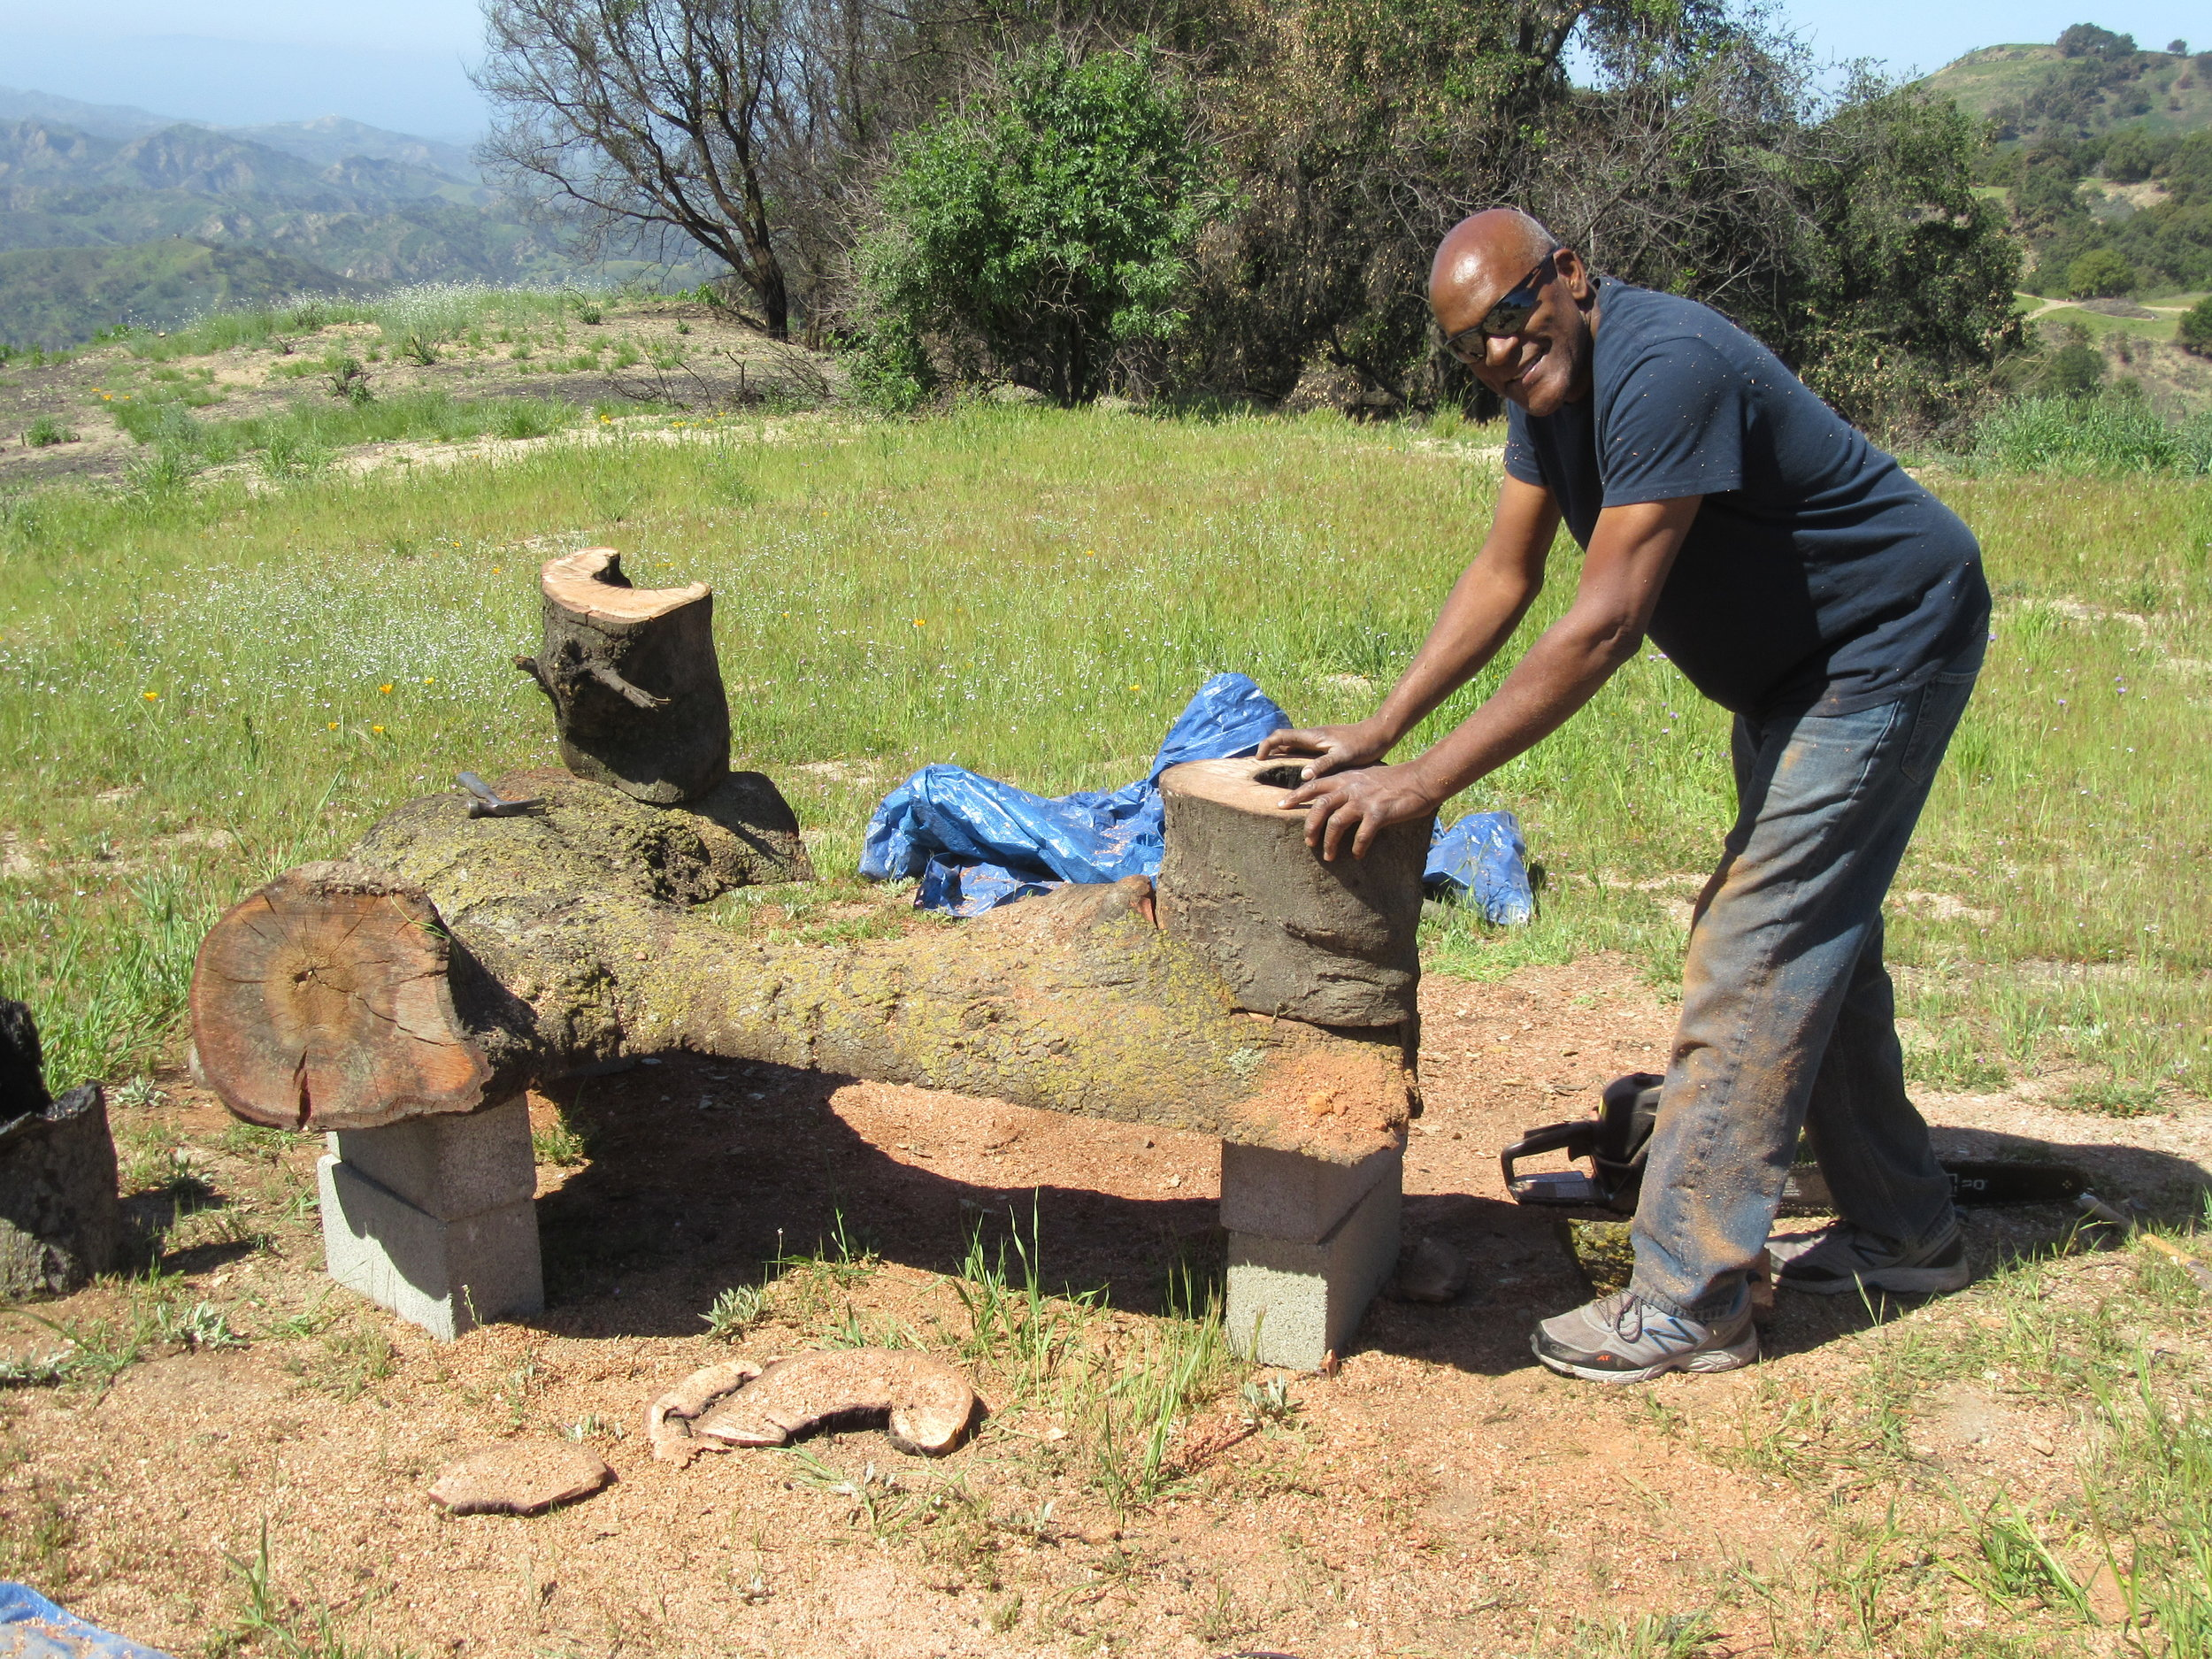 ARTISAN HAROLD GREENE fitting and attaching the legs onto one of the benches made from the fallen limbs of Baba's Tree at Meher Mount. (Photo: Sam Ervin, April 20, 2018)